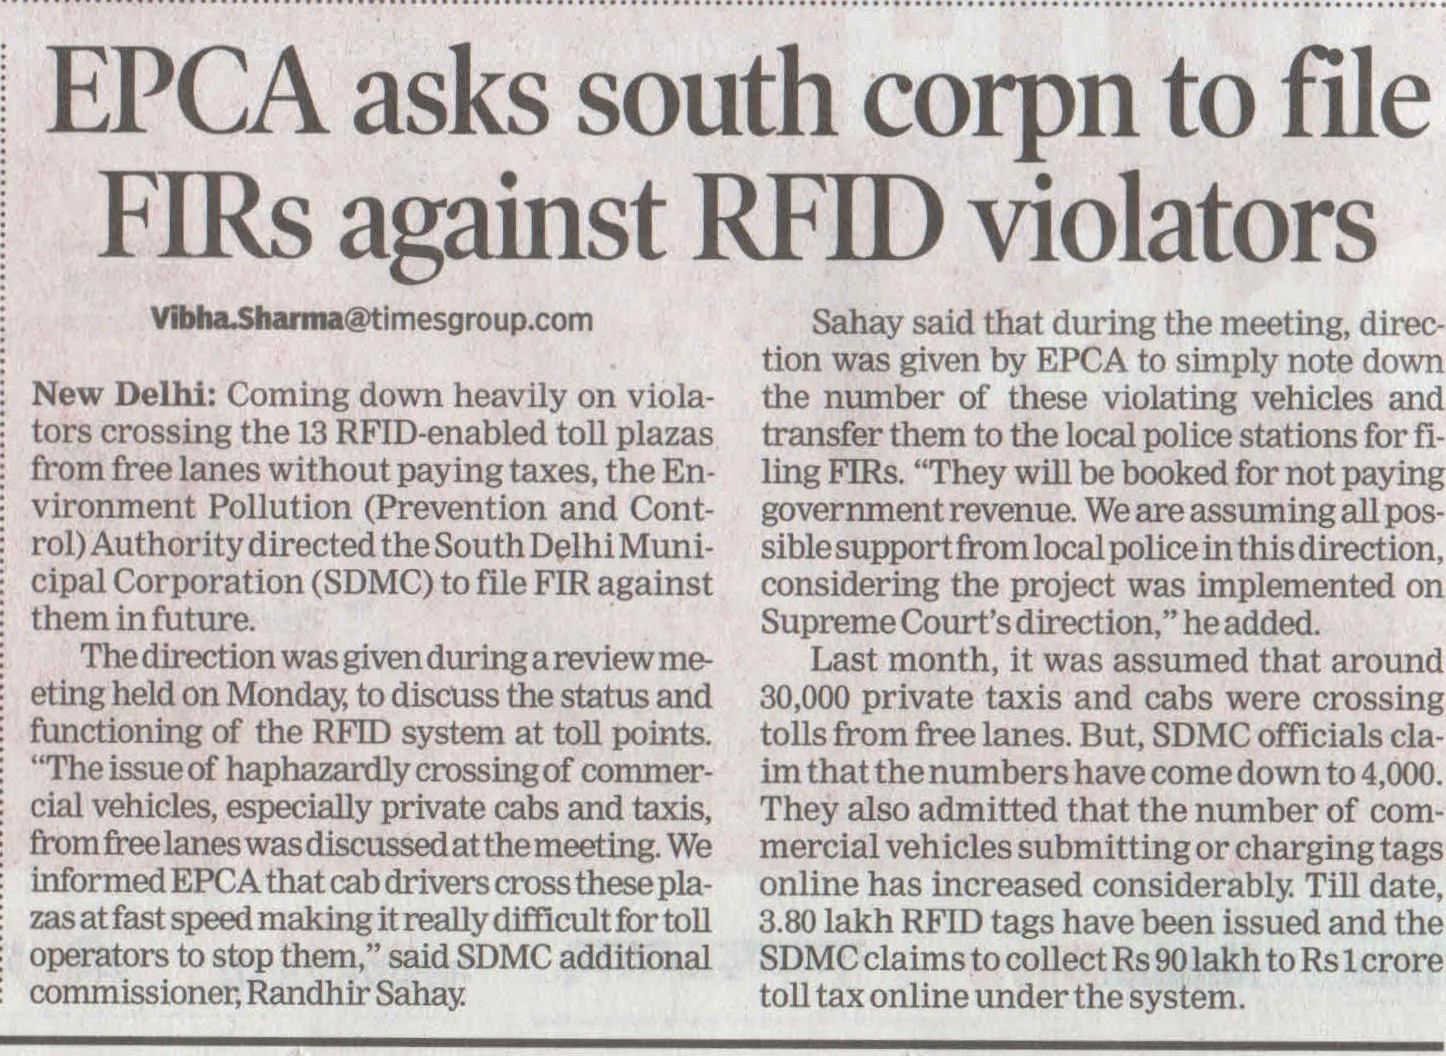 EPCA asks south corpn to file FIRs against RFID violators